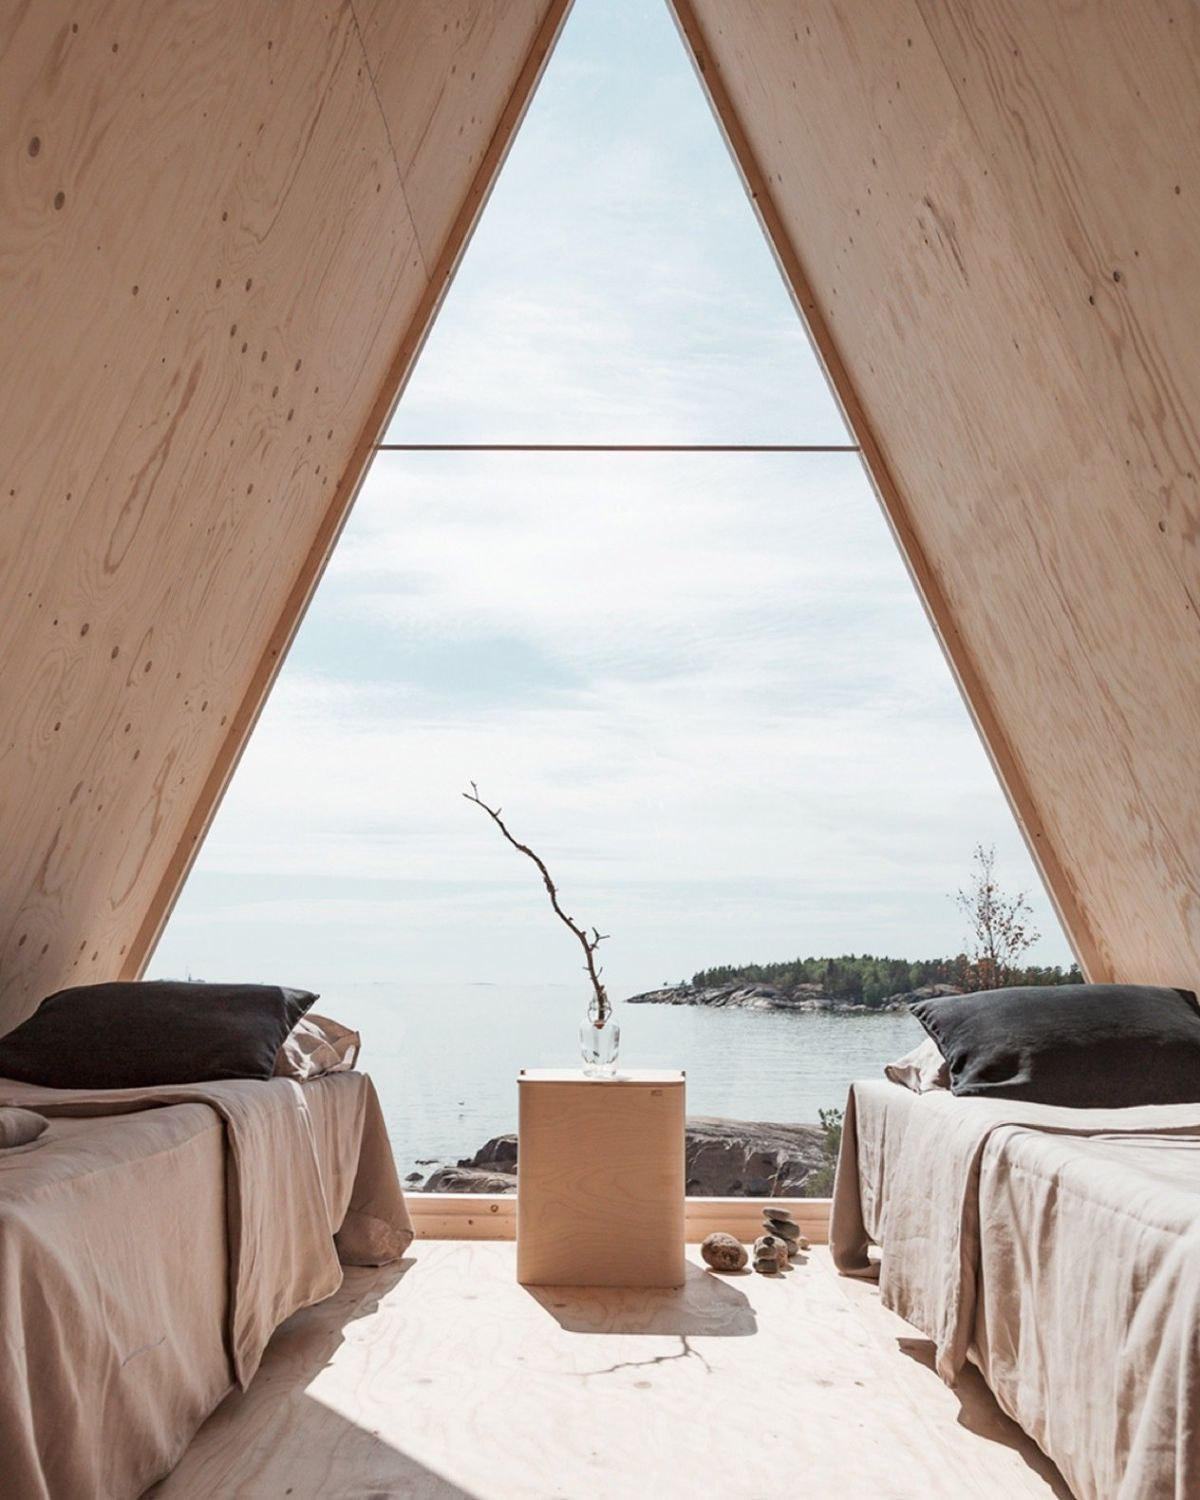 The large triangular window exposes the cabin to its beautiful surroundings, bringing the outdoors in